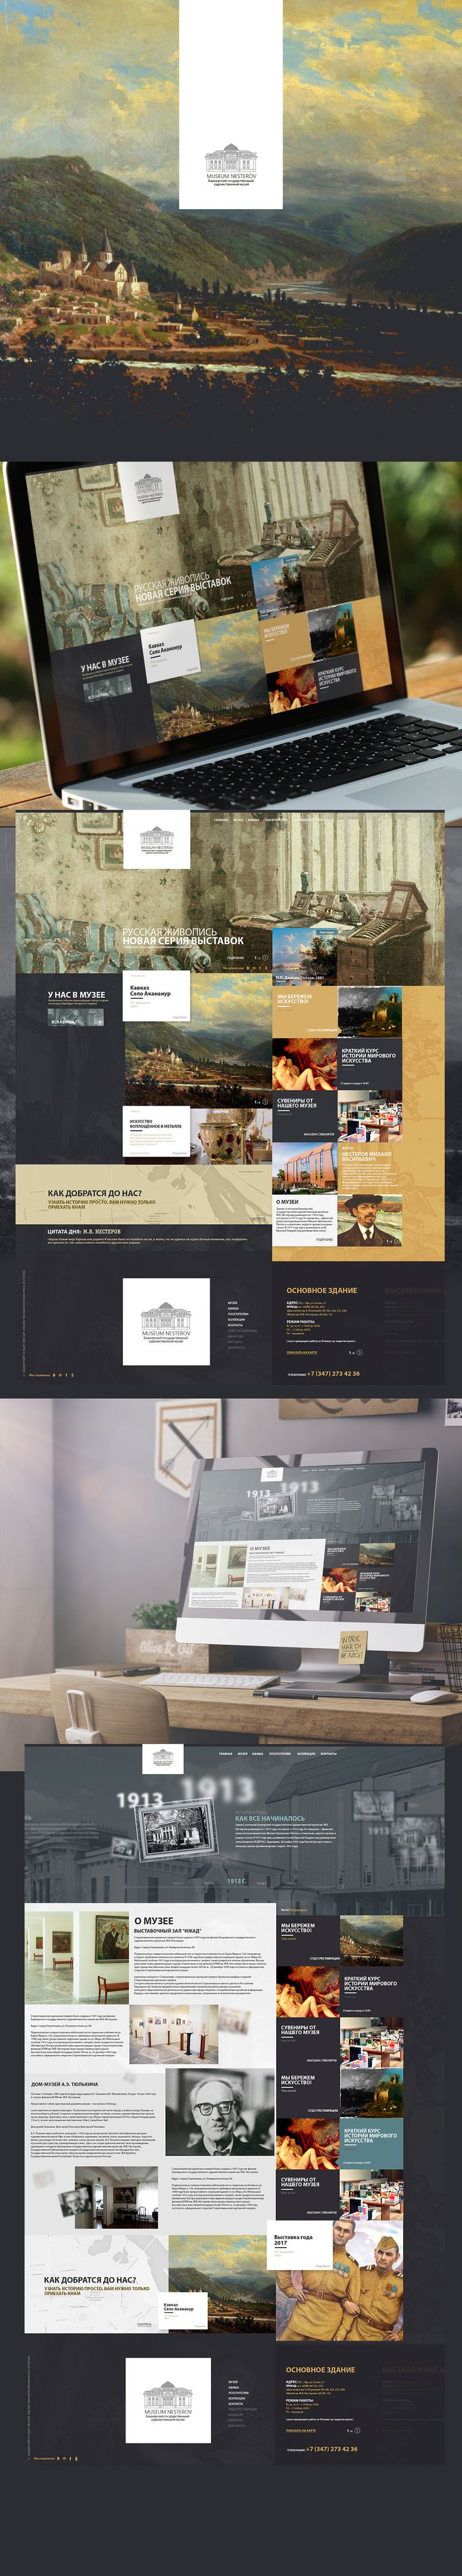 Museum nesterov v.1 on Behance